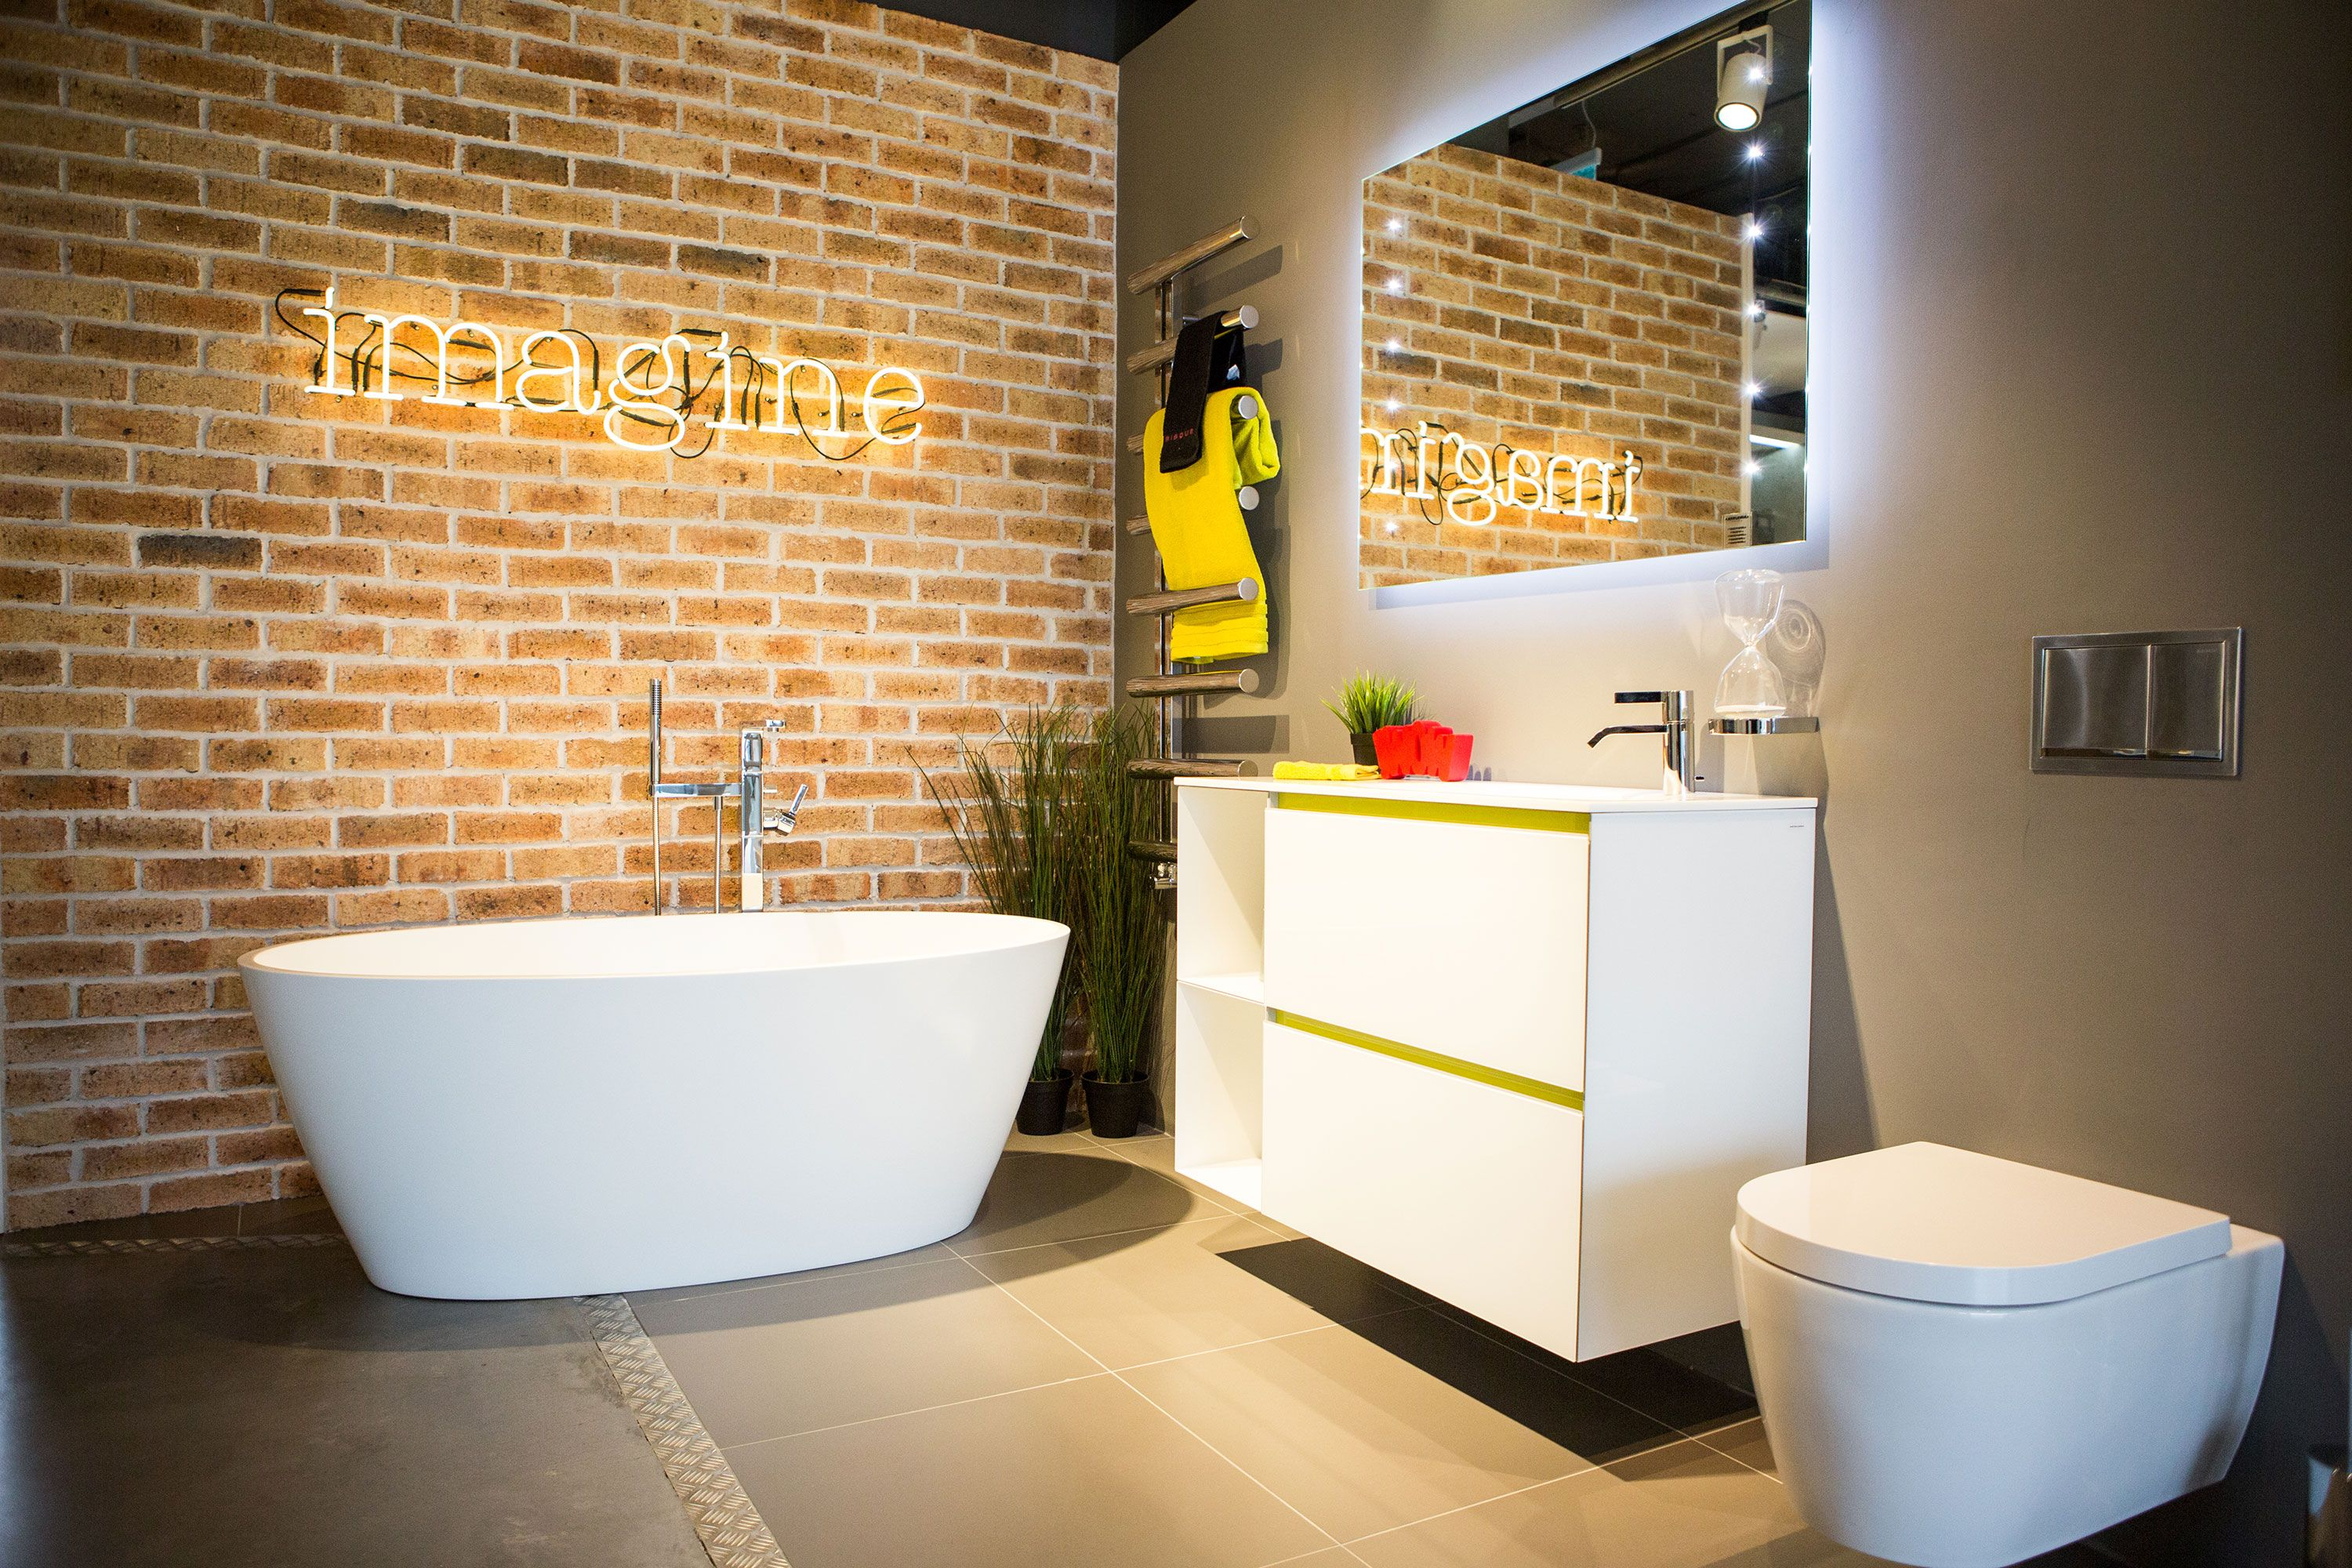 0fb107abe92 Our Leadon freestanding bath is on display at our Guildford showroom. Visit  us to view a wide range of traditional and contemporary roomsets.